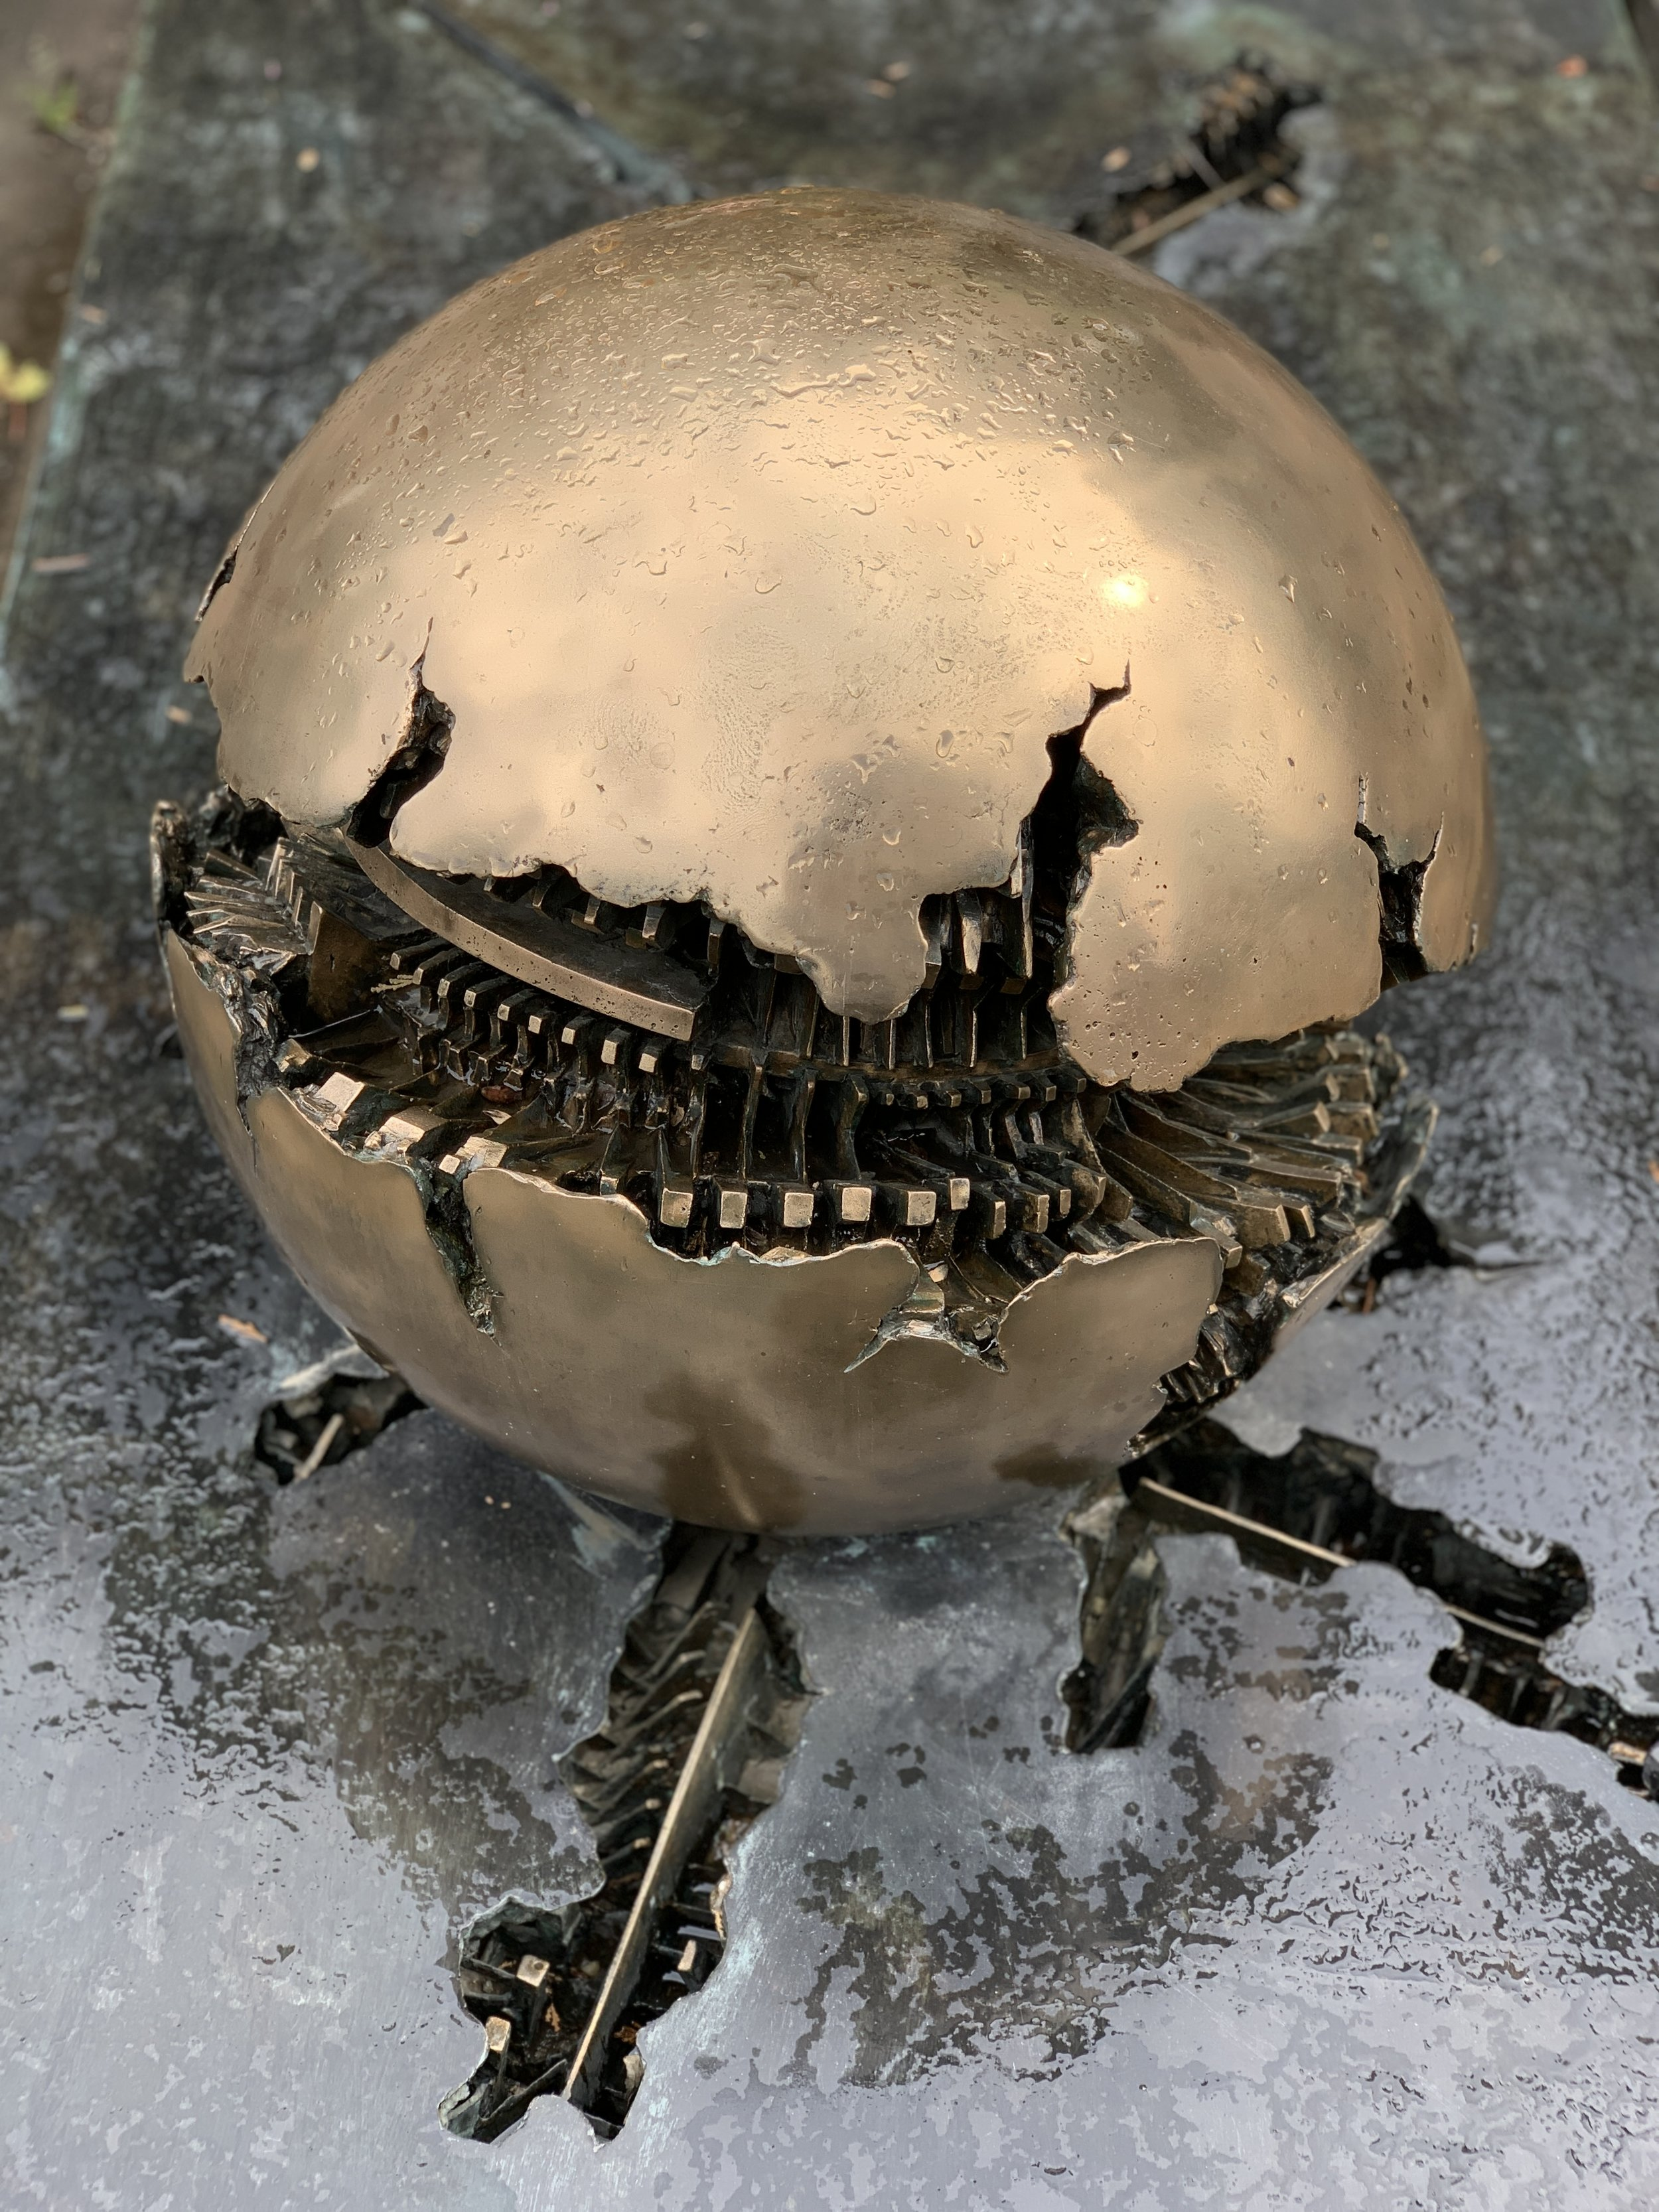 A tombstone, if it can be called that, designed by Arnaldo Pomodoro at Il Cimitero Monumentale.